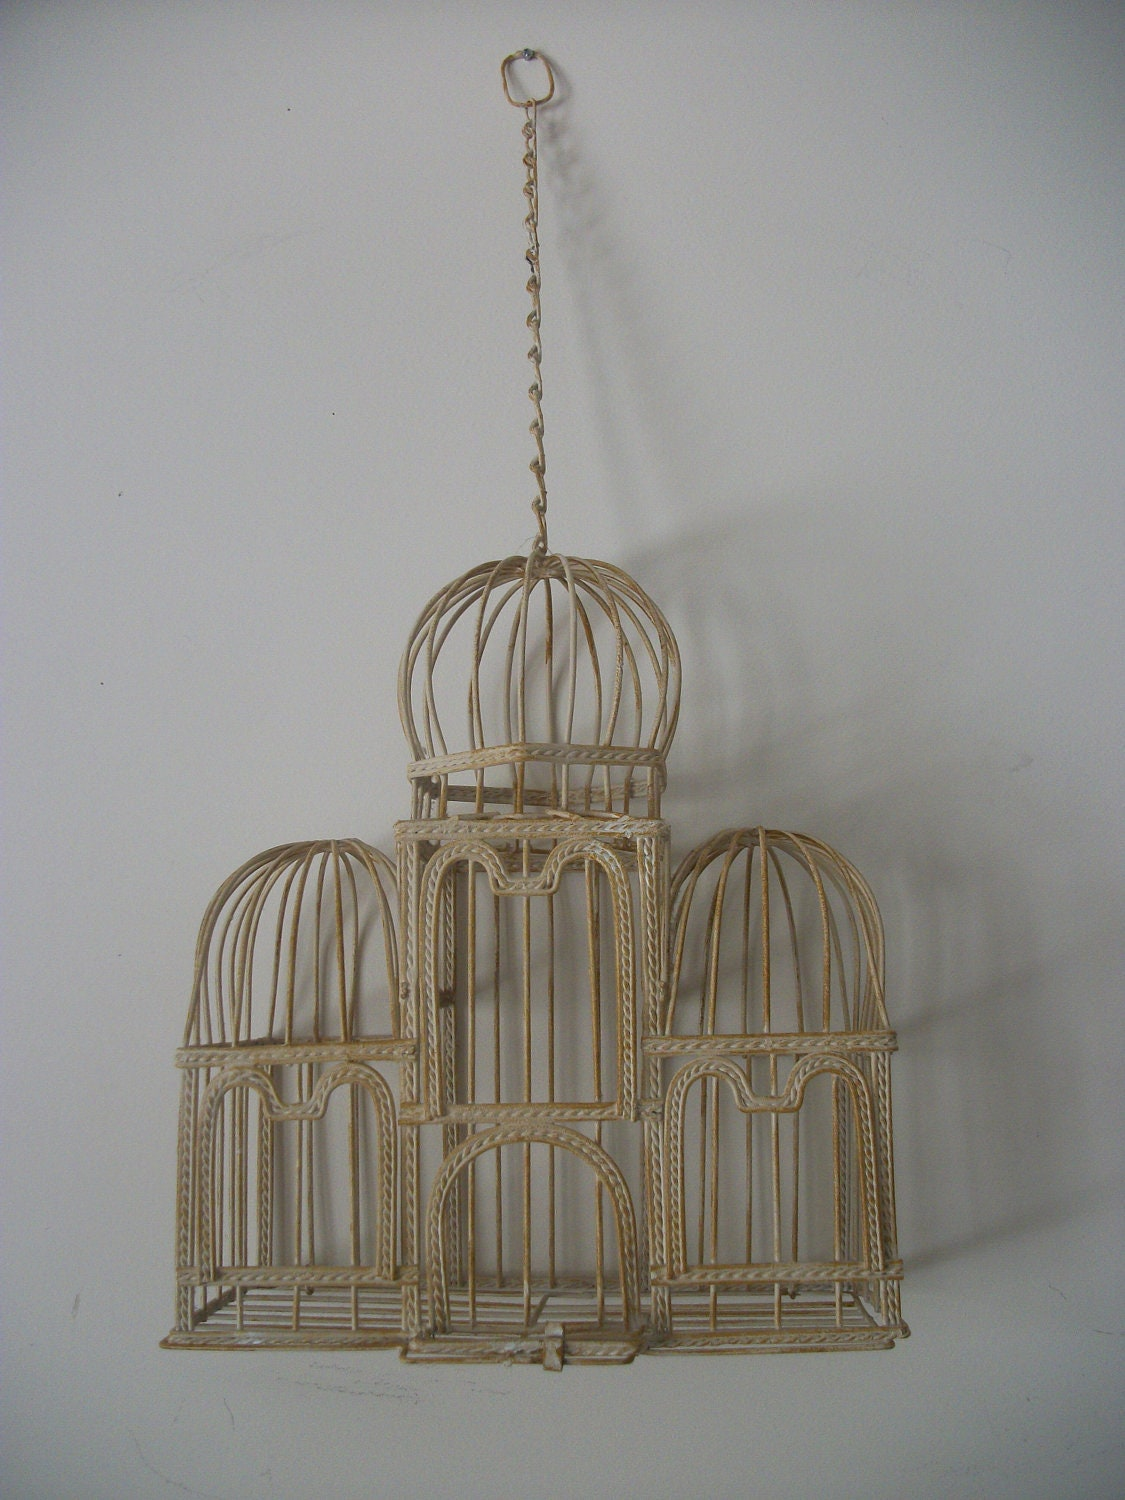 Vintage Metal Hanging Bird Cage by NoveltyandThings on Etsy